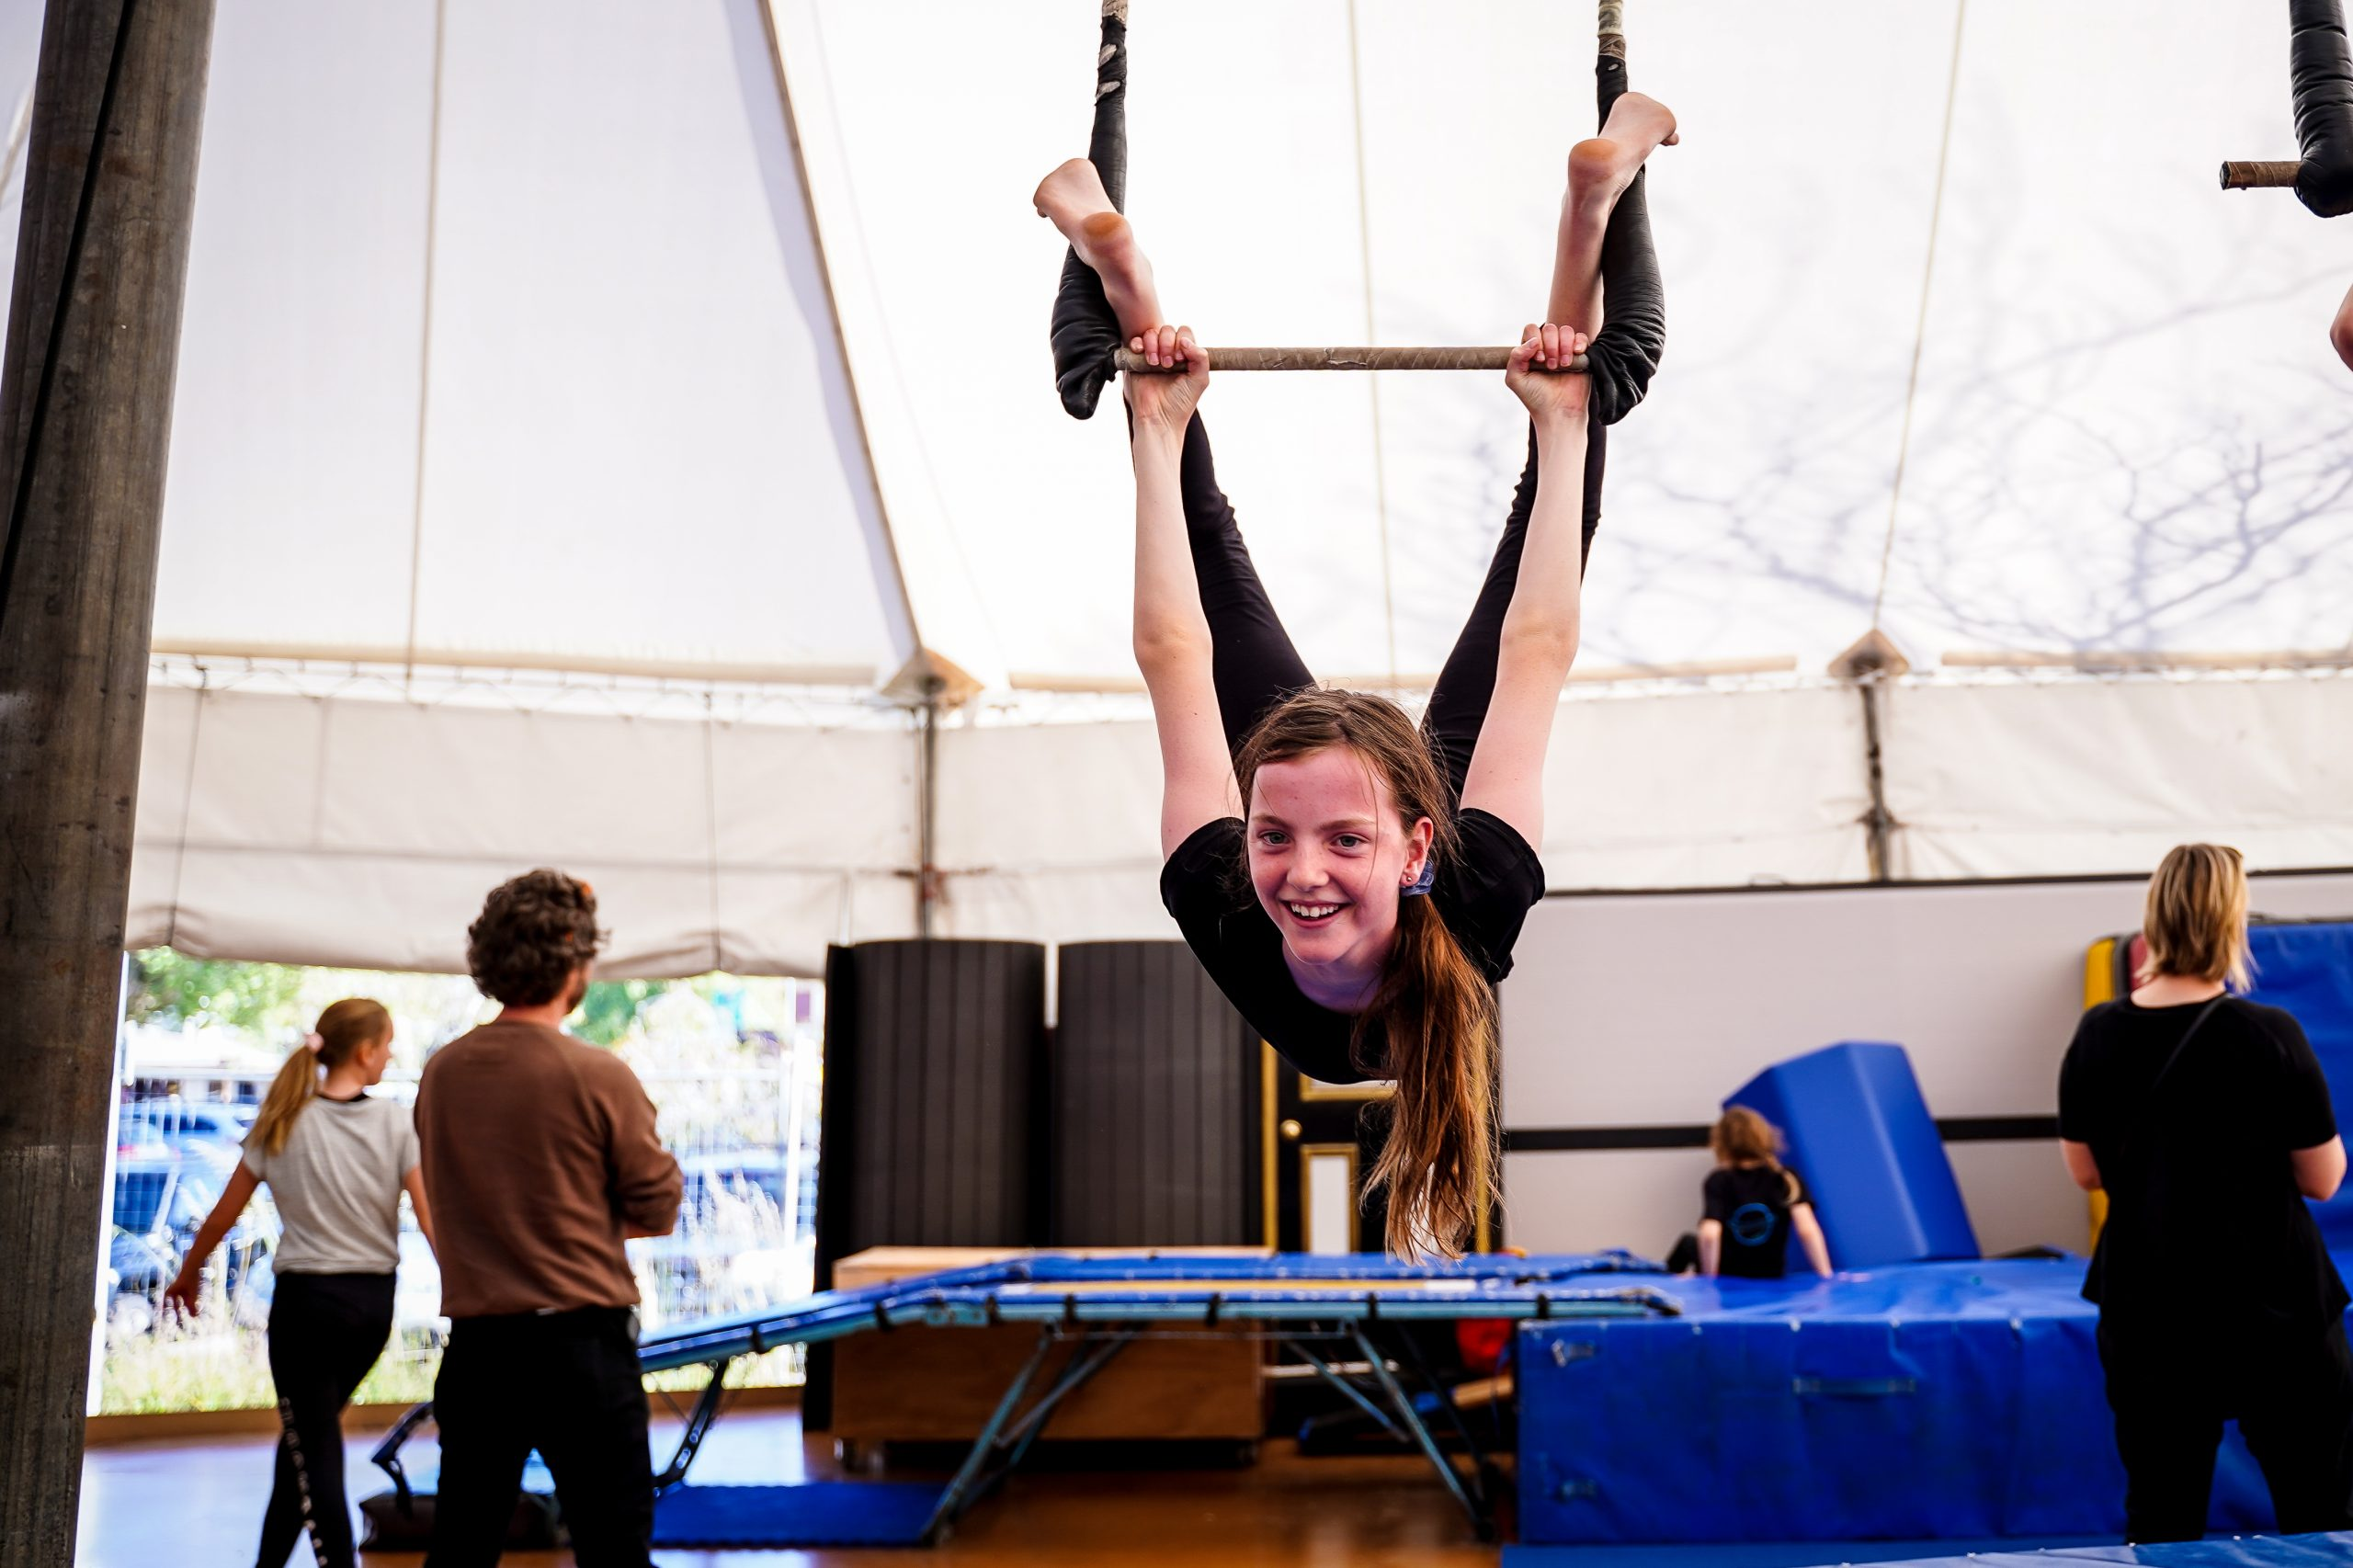 A girl hangs upside down from a trapeze